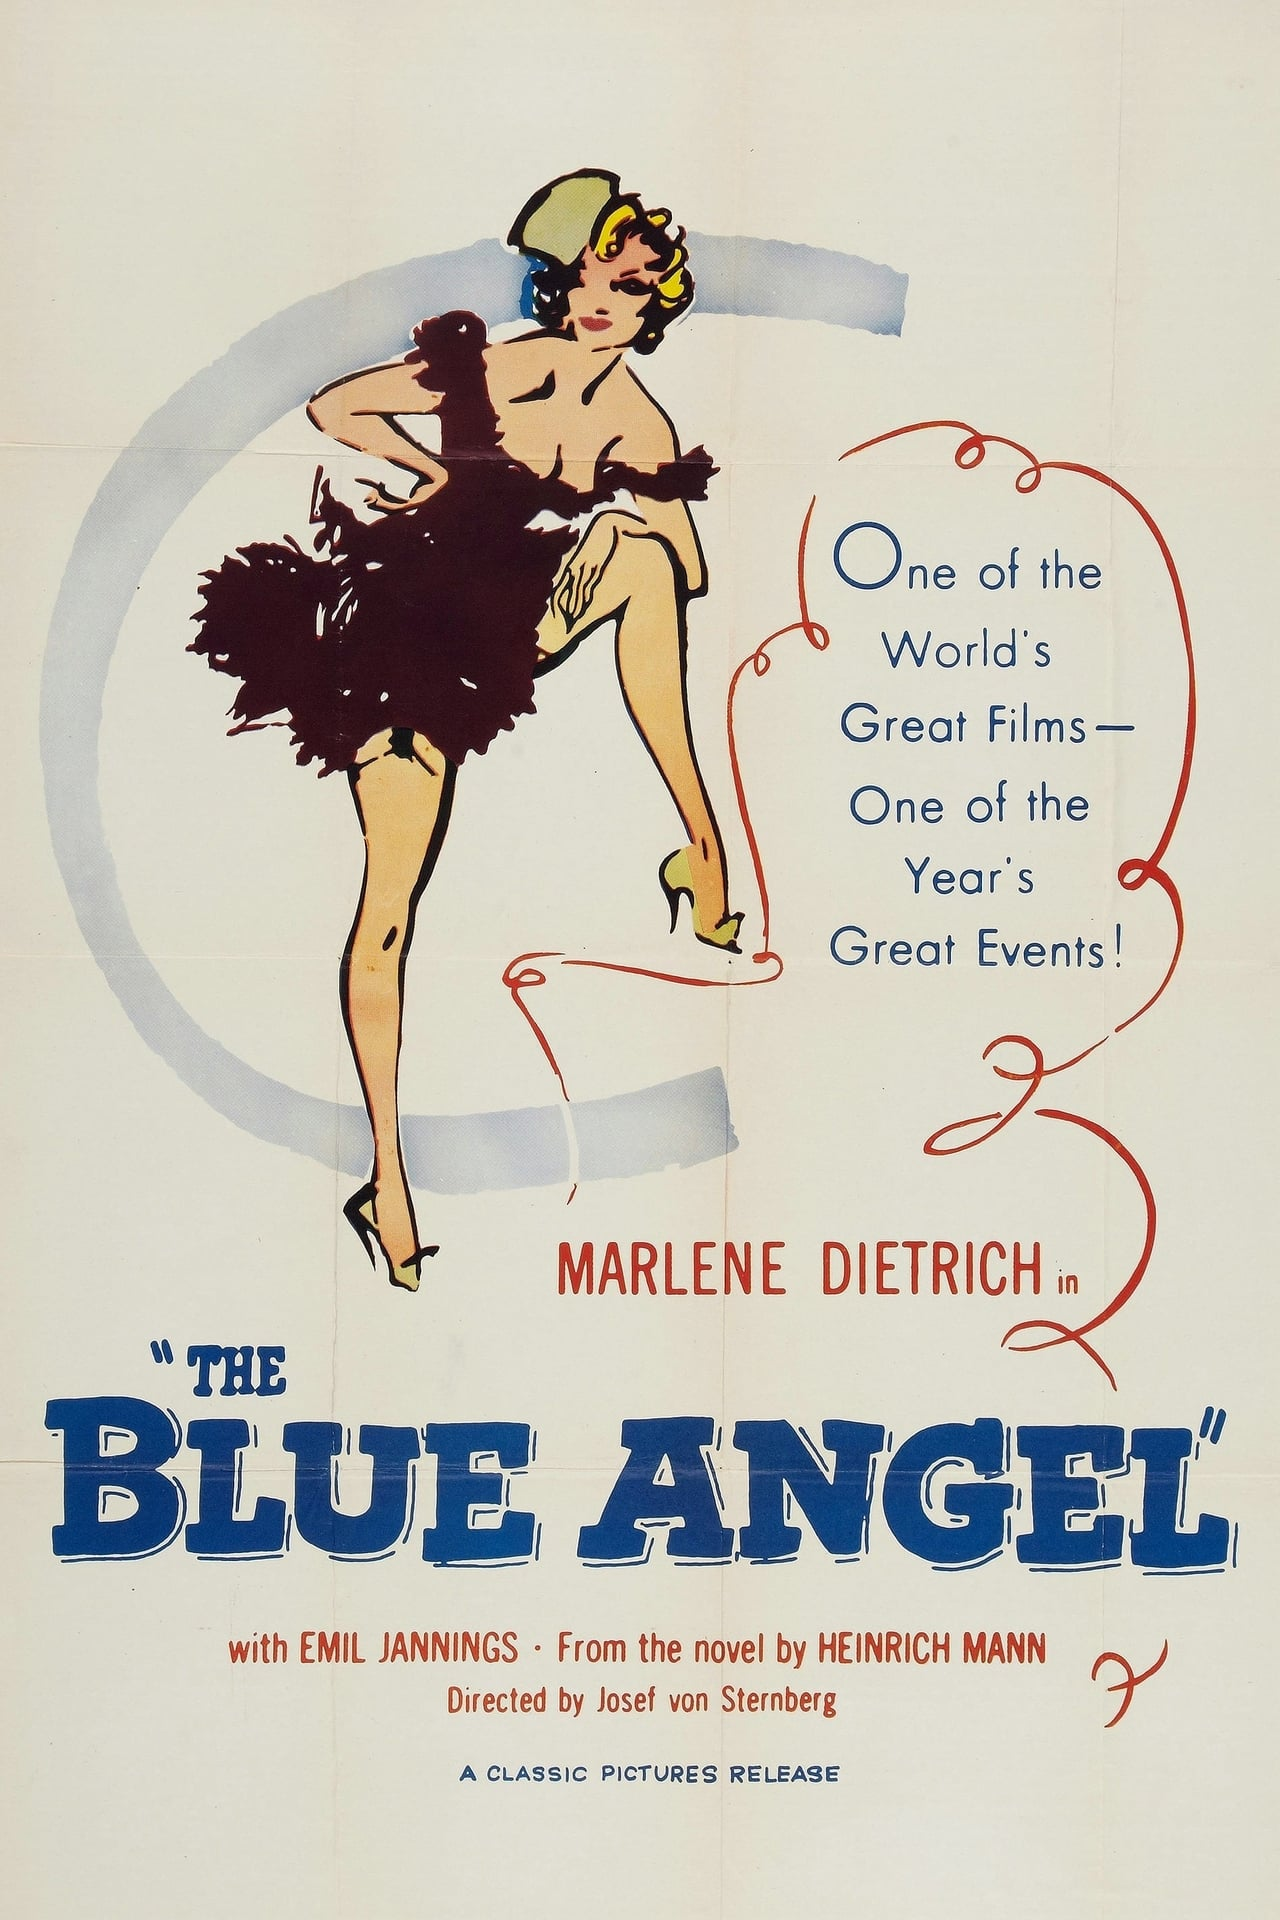 Der Blaue Engel Josef Von Sternberg The Blue Angel Subtitles English Opensubtitles